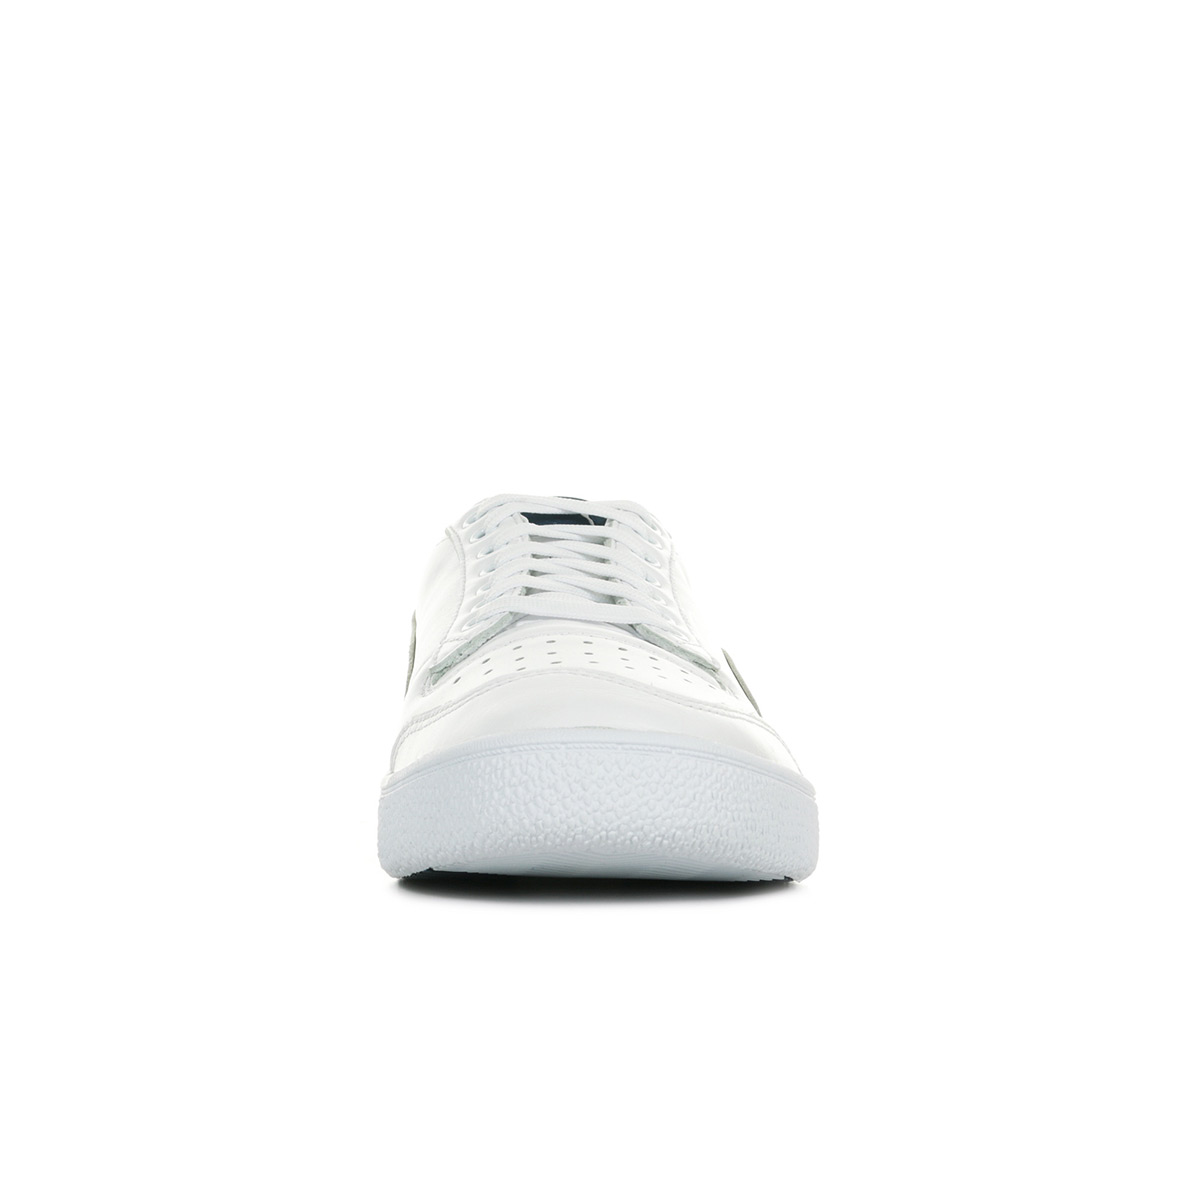 Puma Ralph Sampson Low OG 37071901, Baskets mode homme